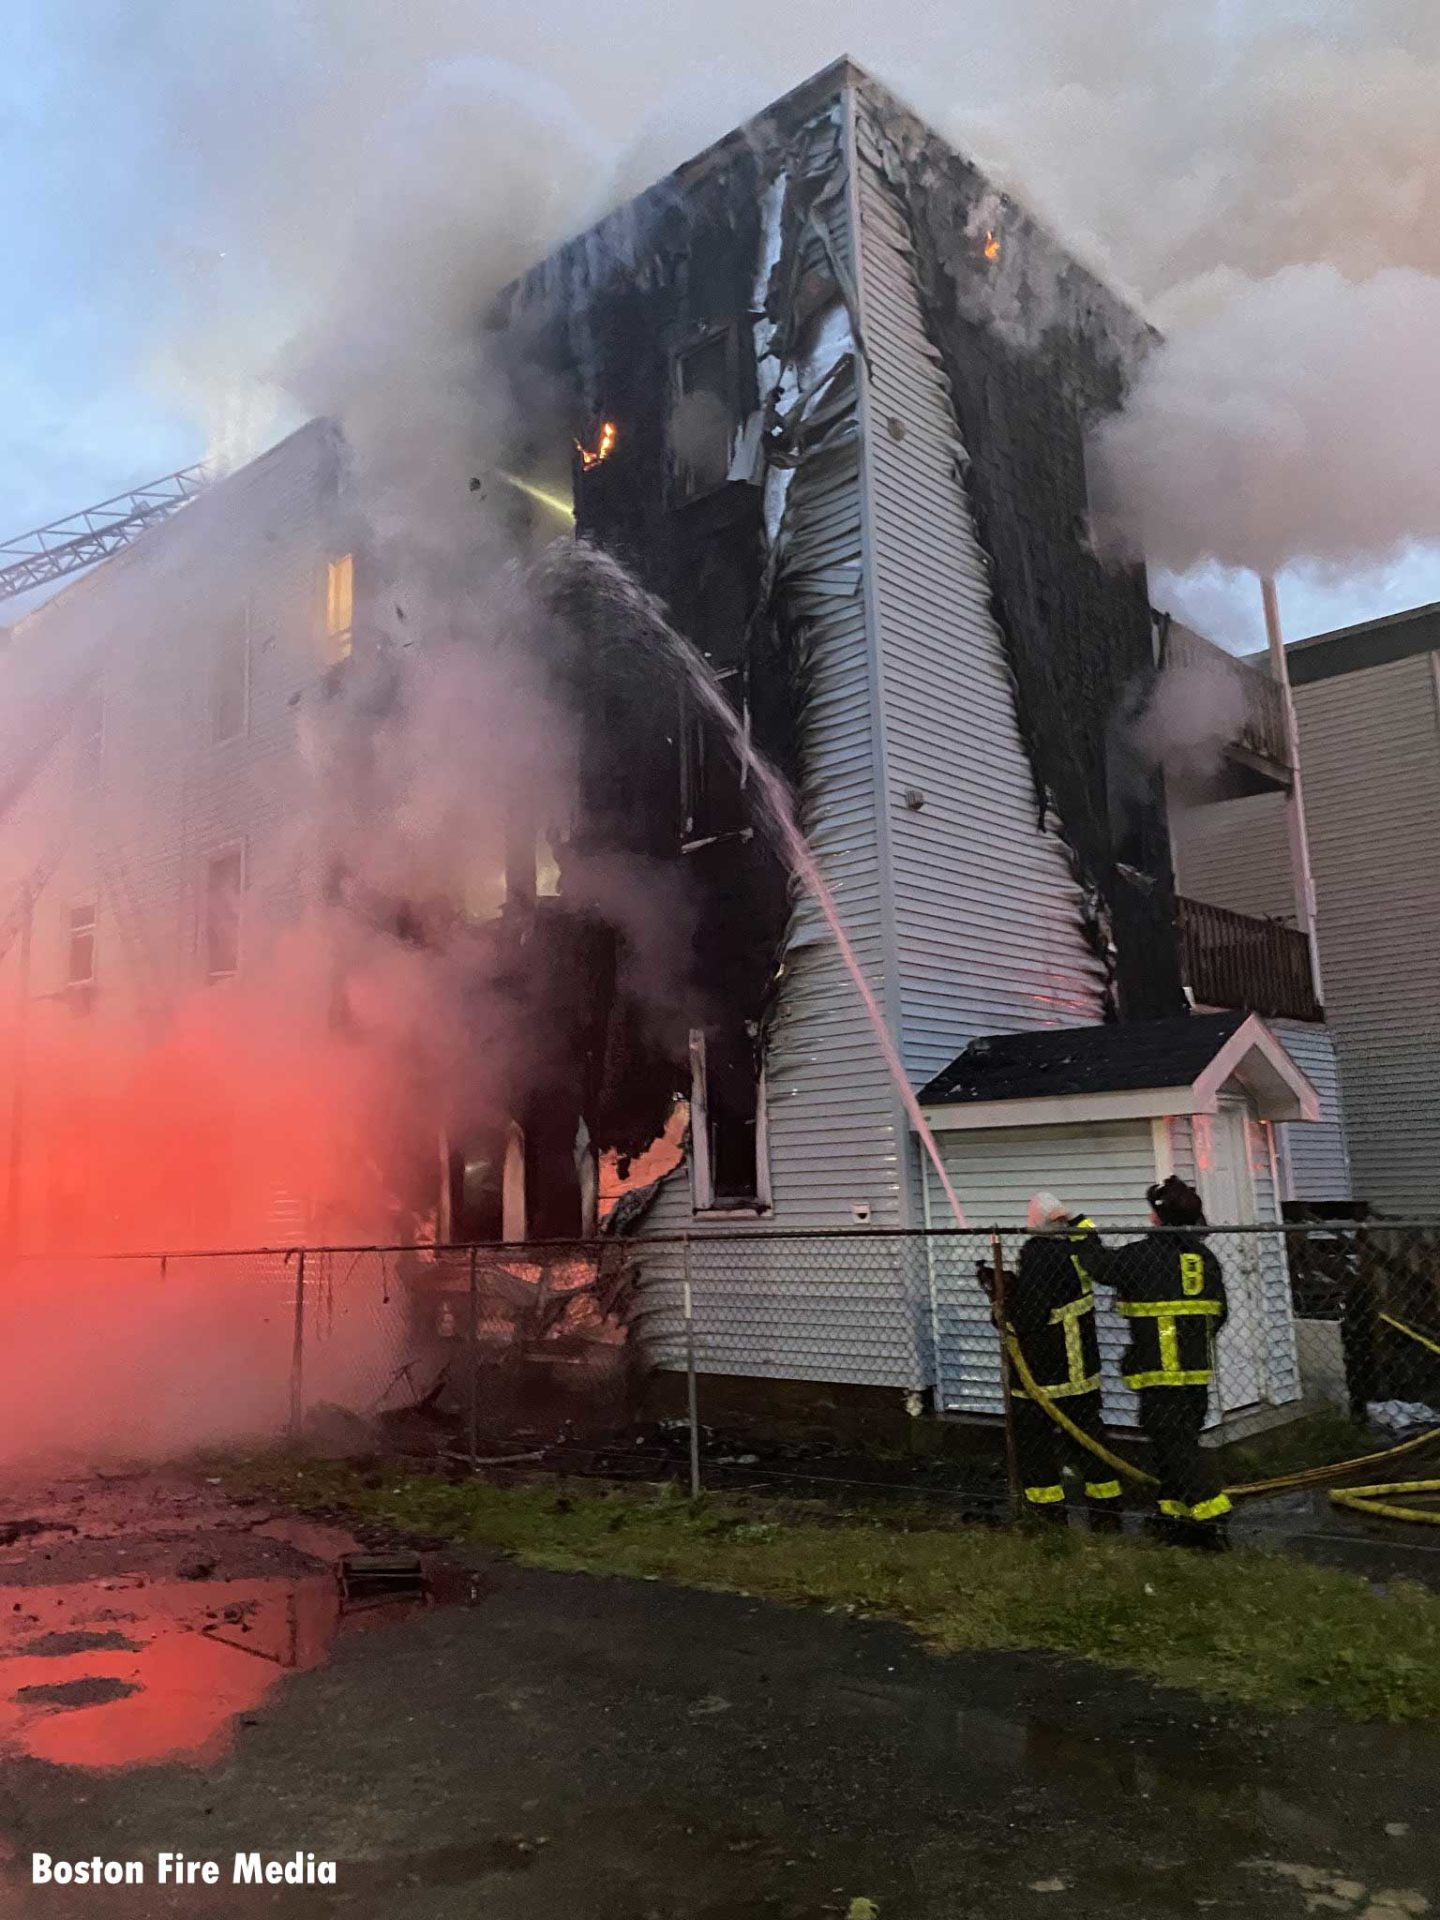 Firefighters apply water on the charred building exterior